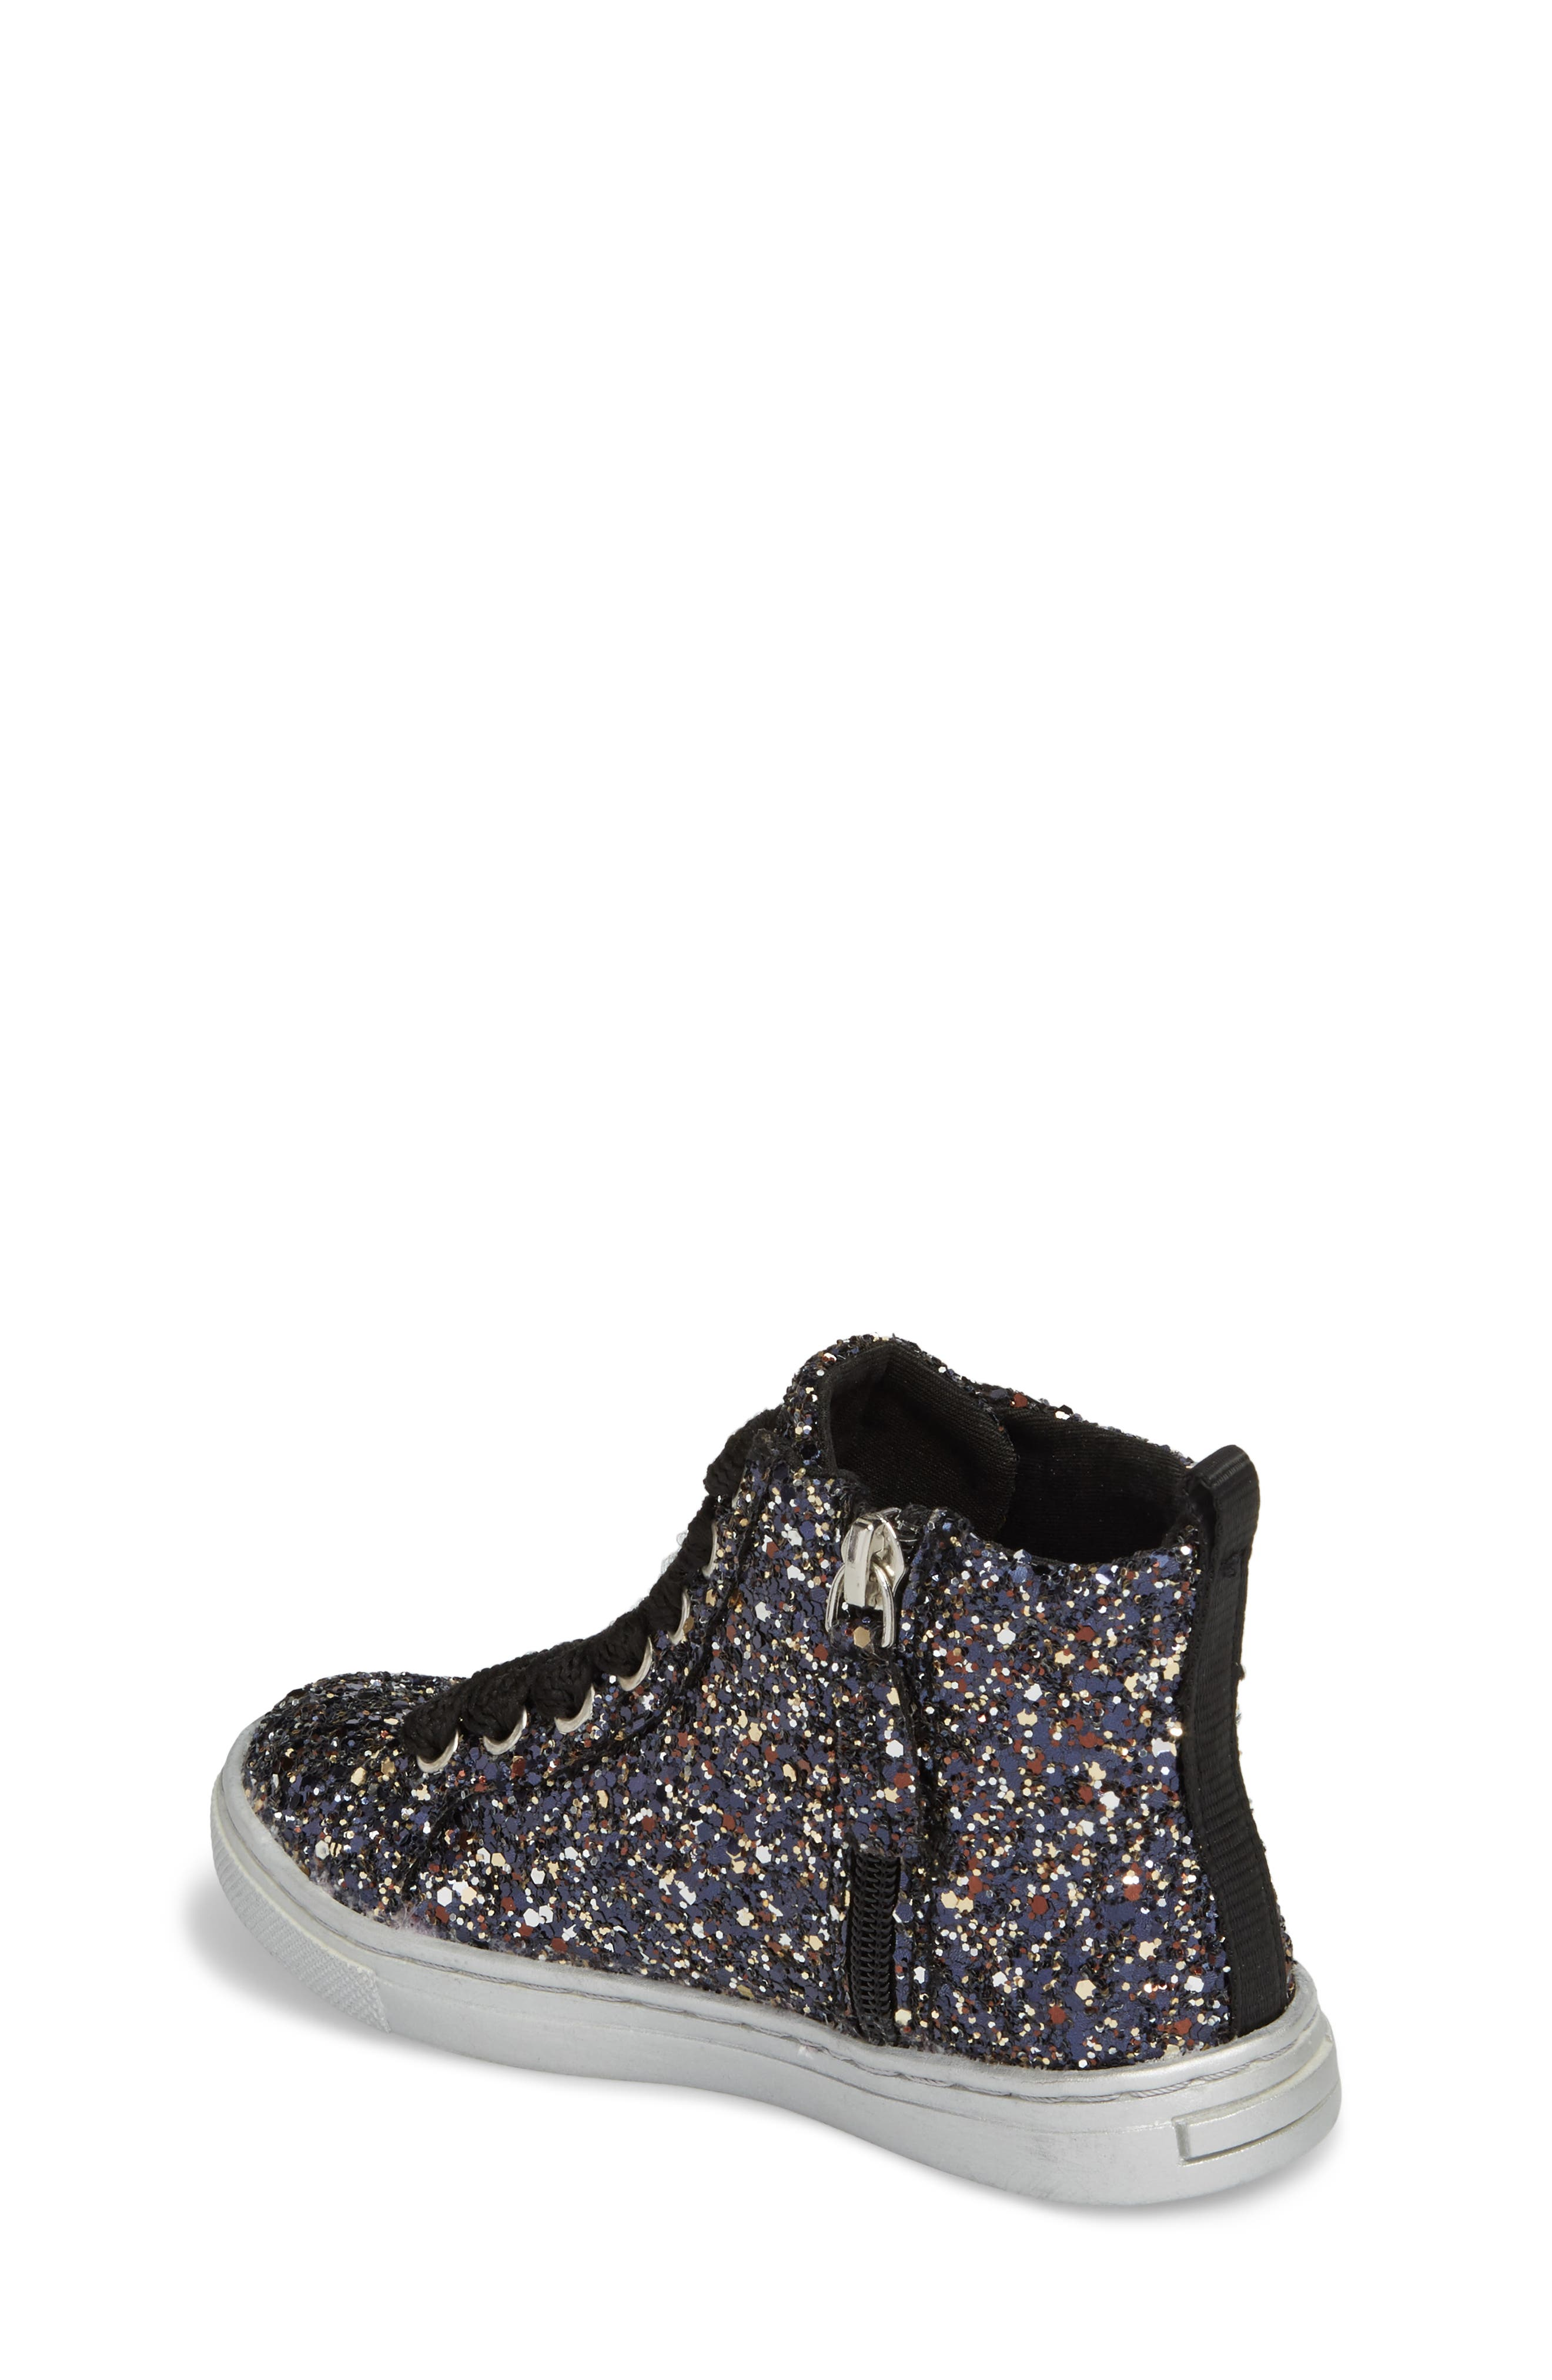 Zaine Glittery High Top Sneaker,                             Alternate thumbnail 2, color,                             001